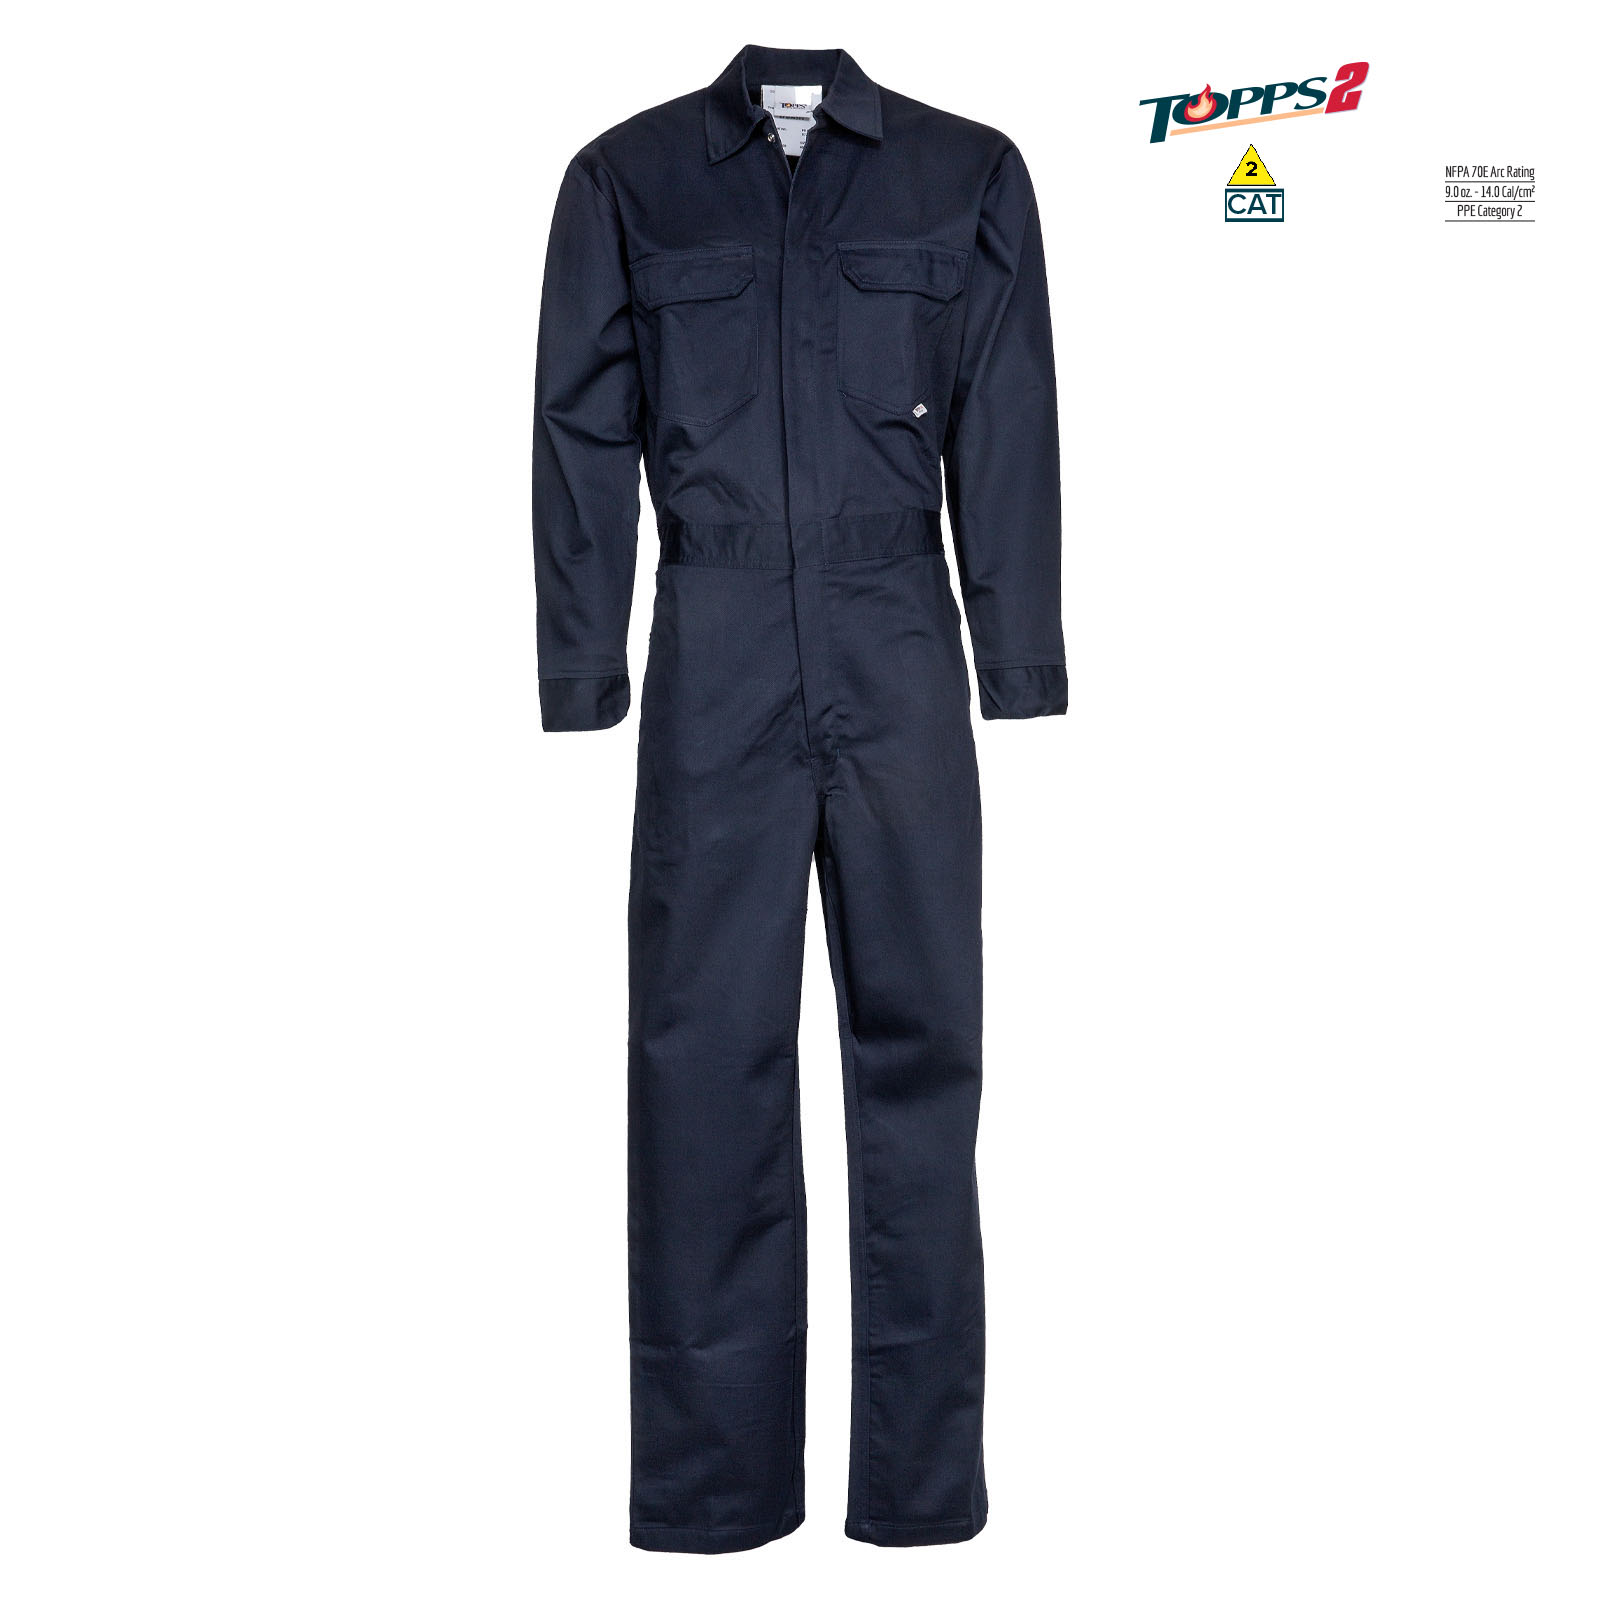 88/12 Cotton/Nylon Blend Flame Resistant Middleweight Economy Coverall-